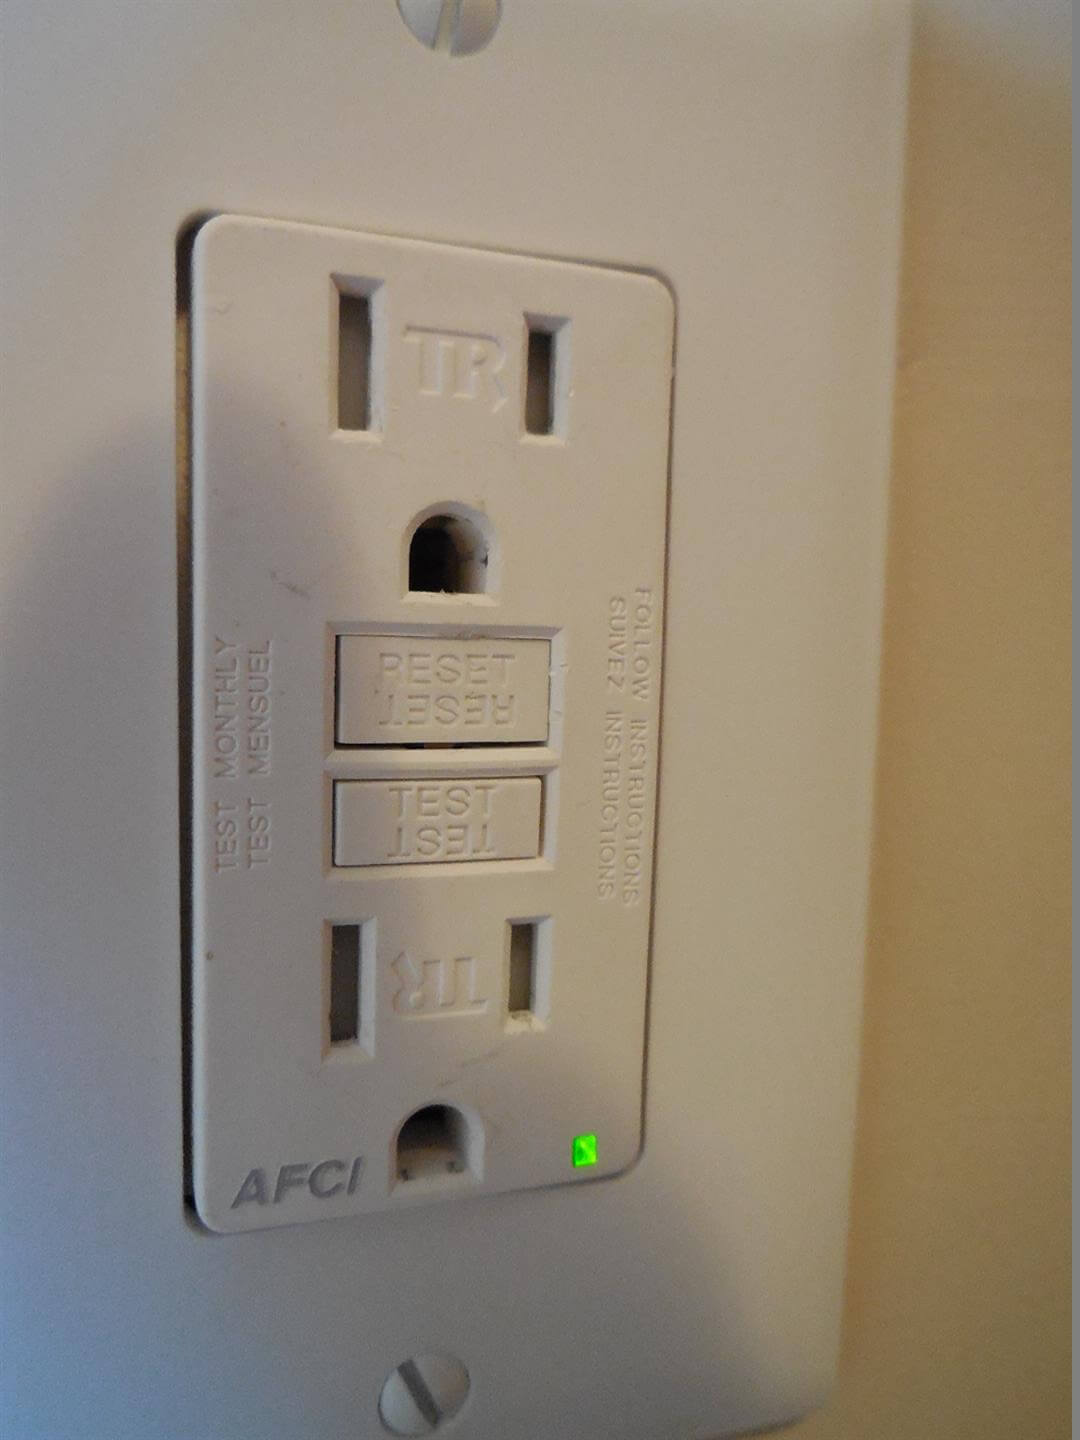 Diagram Afci Protection Electrical Outlets